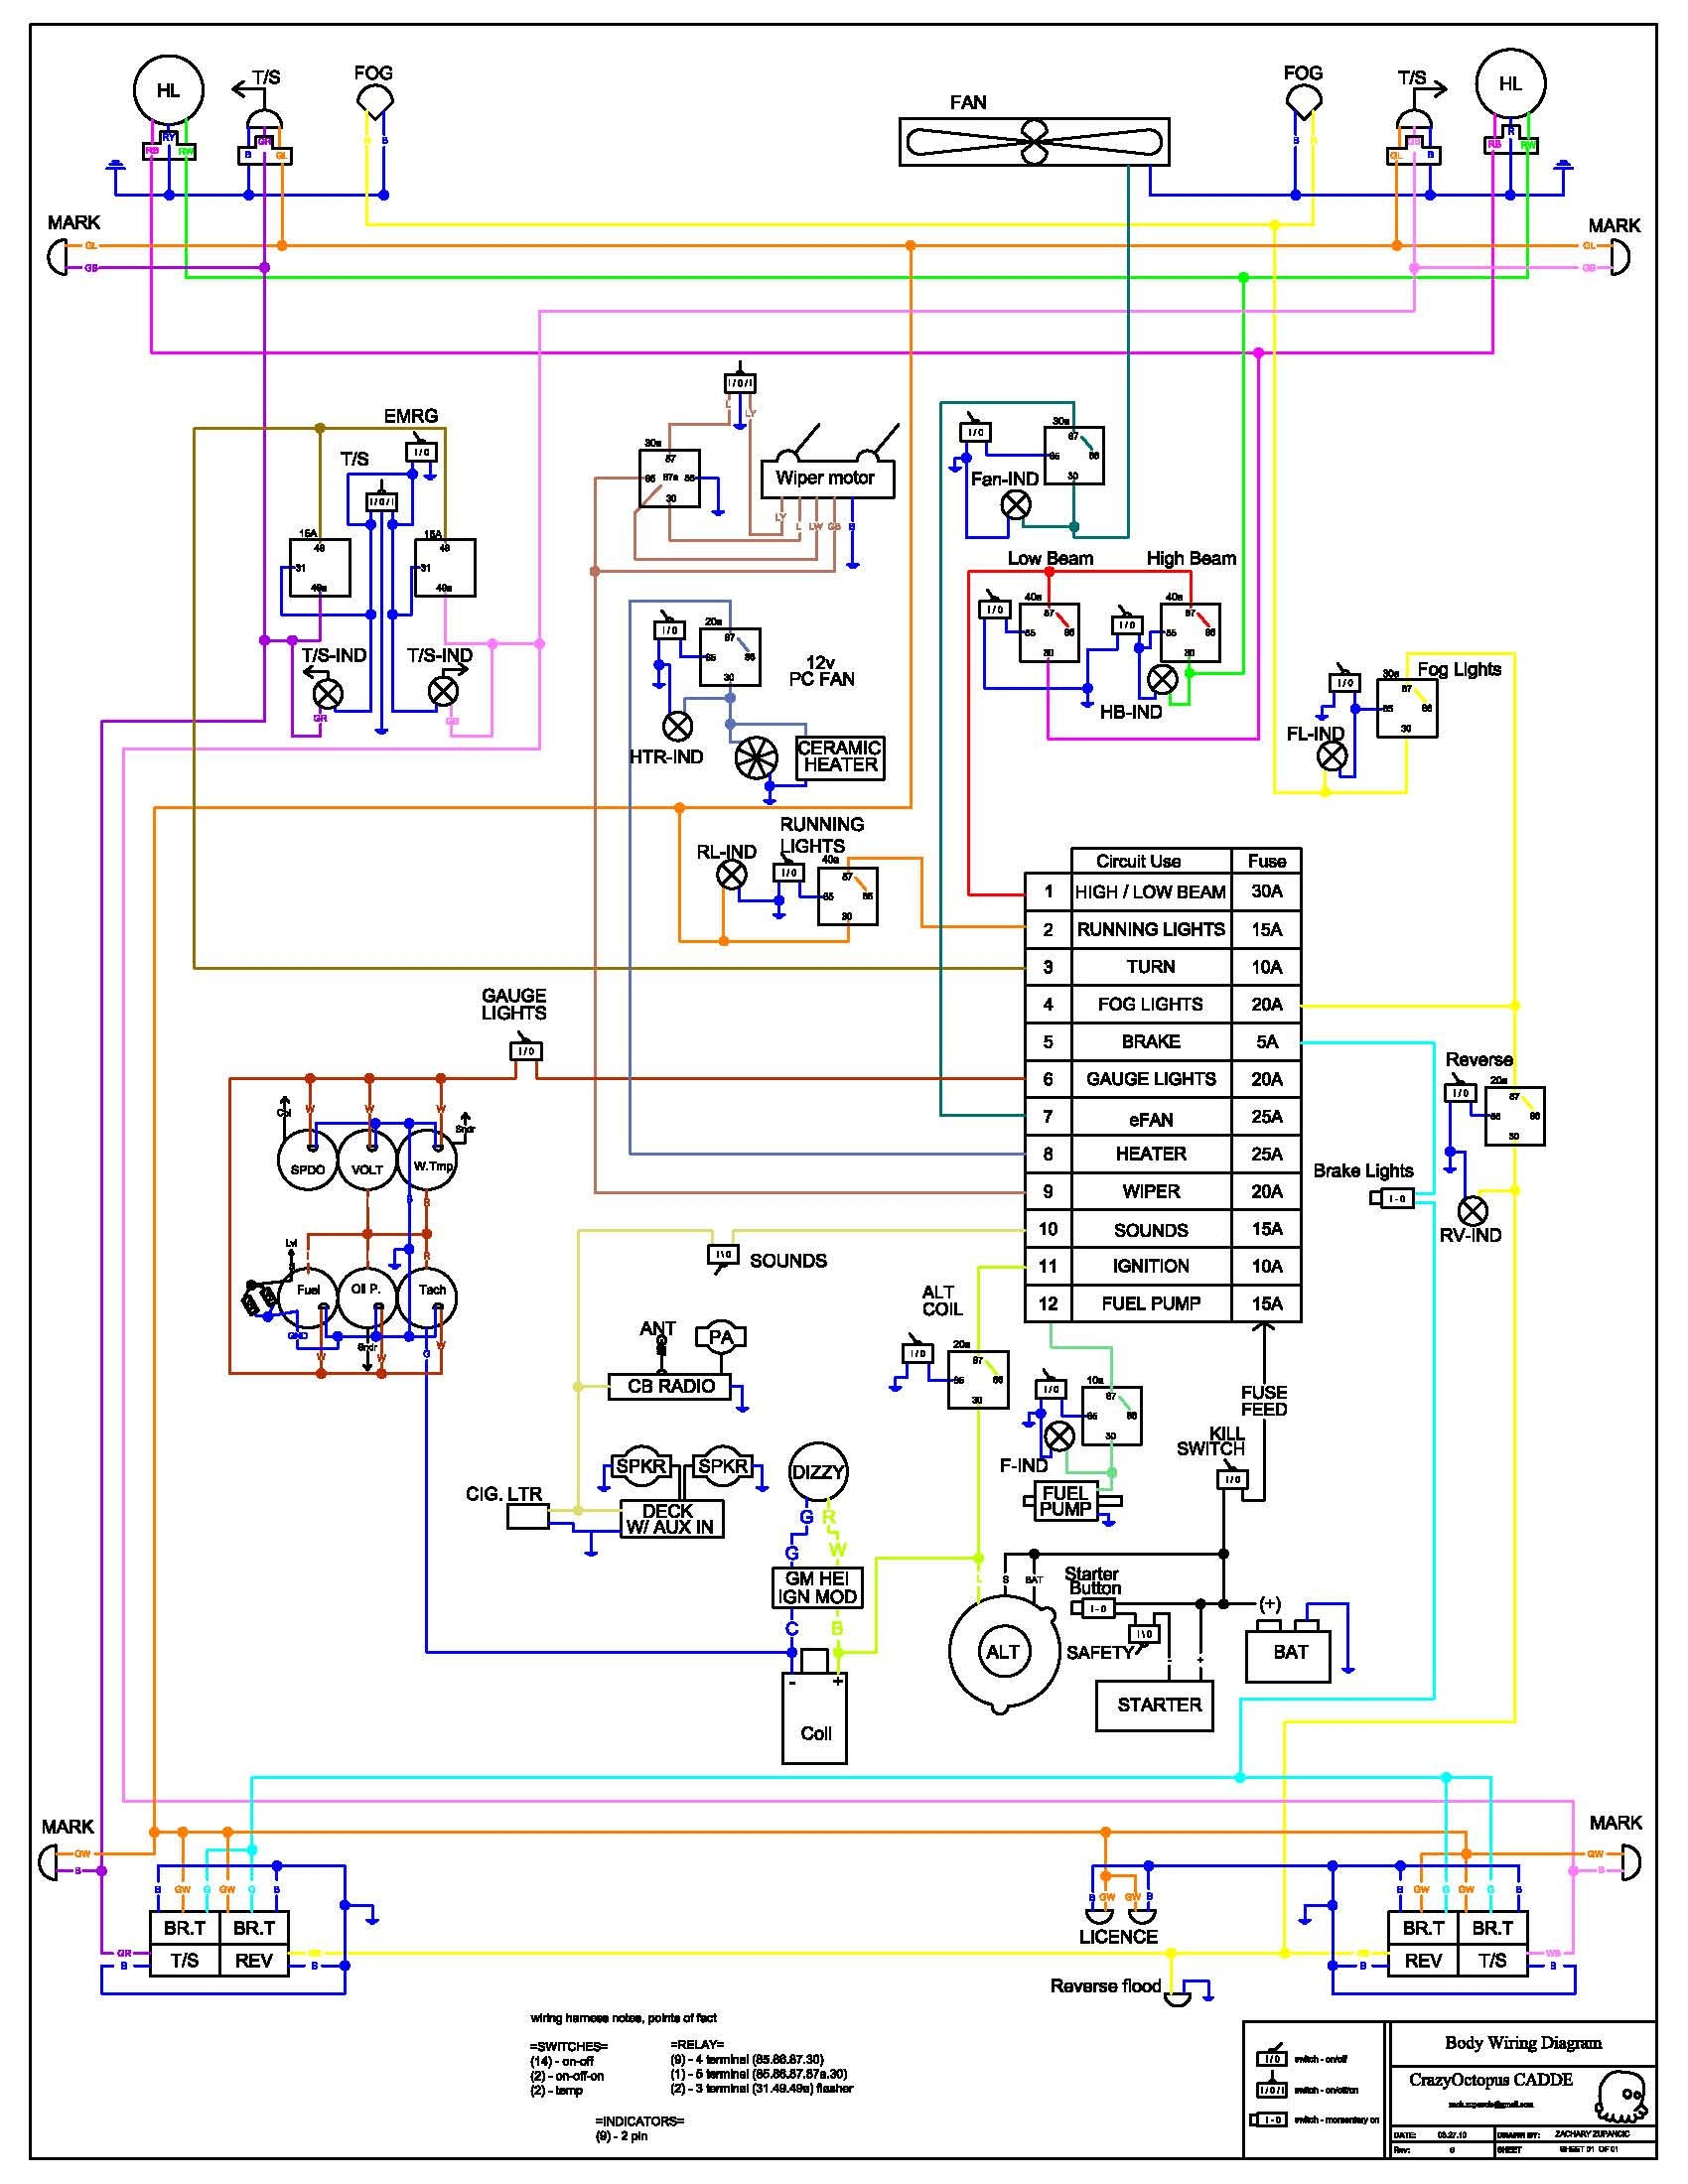 79 z28 camaro radio wiring diagram 79 get free image about wiring diagram